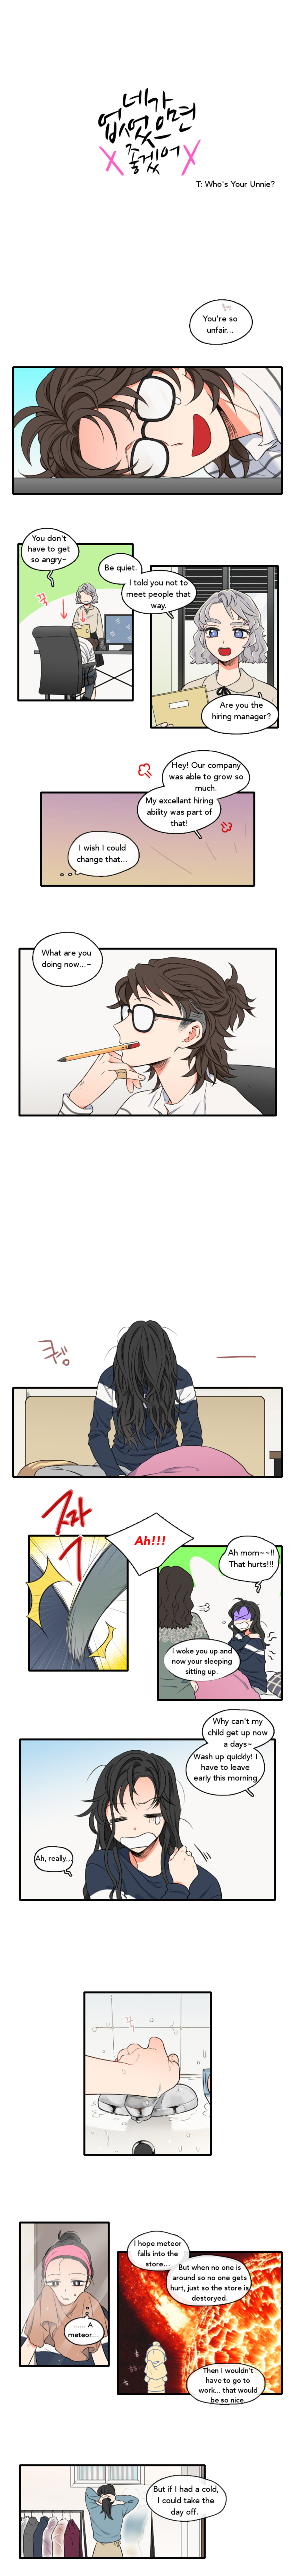 It'd Be Great If You Didn't Exist: 31. Manhwa So Read: Left to Right artist twitter: non official site: hopeyoudid_not join list: ItWouldBeGreat (123 subs)Menti